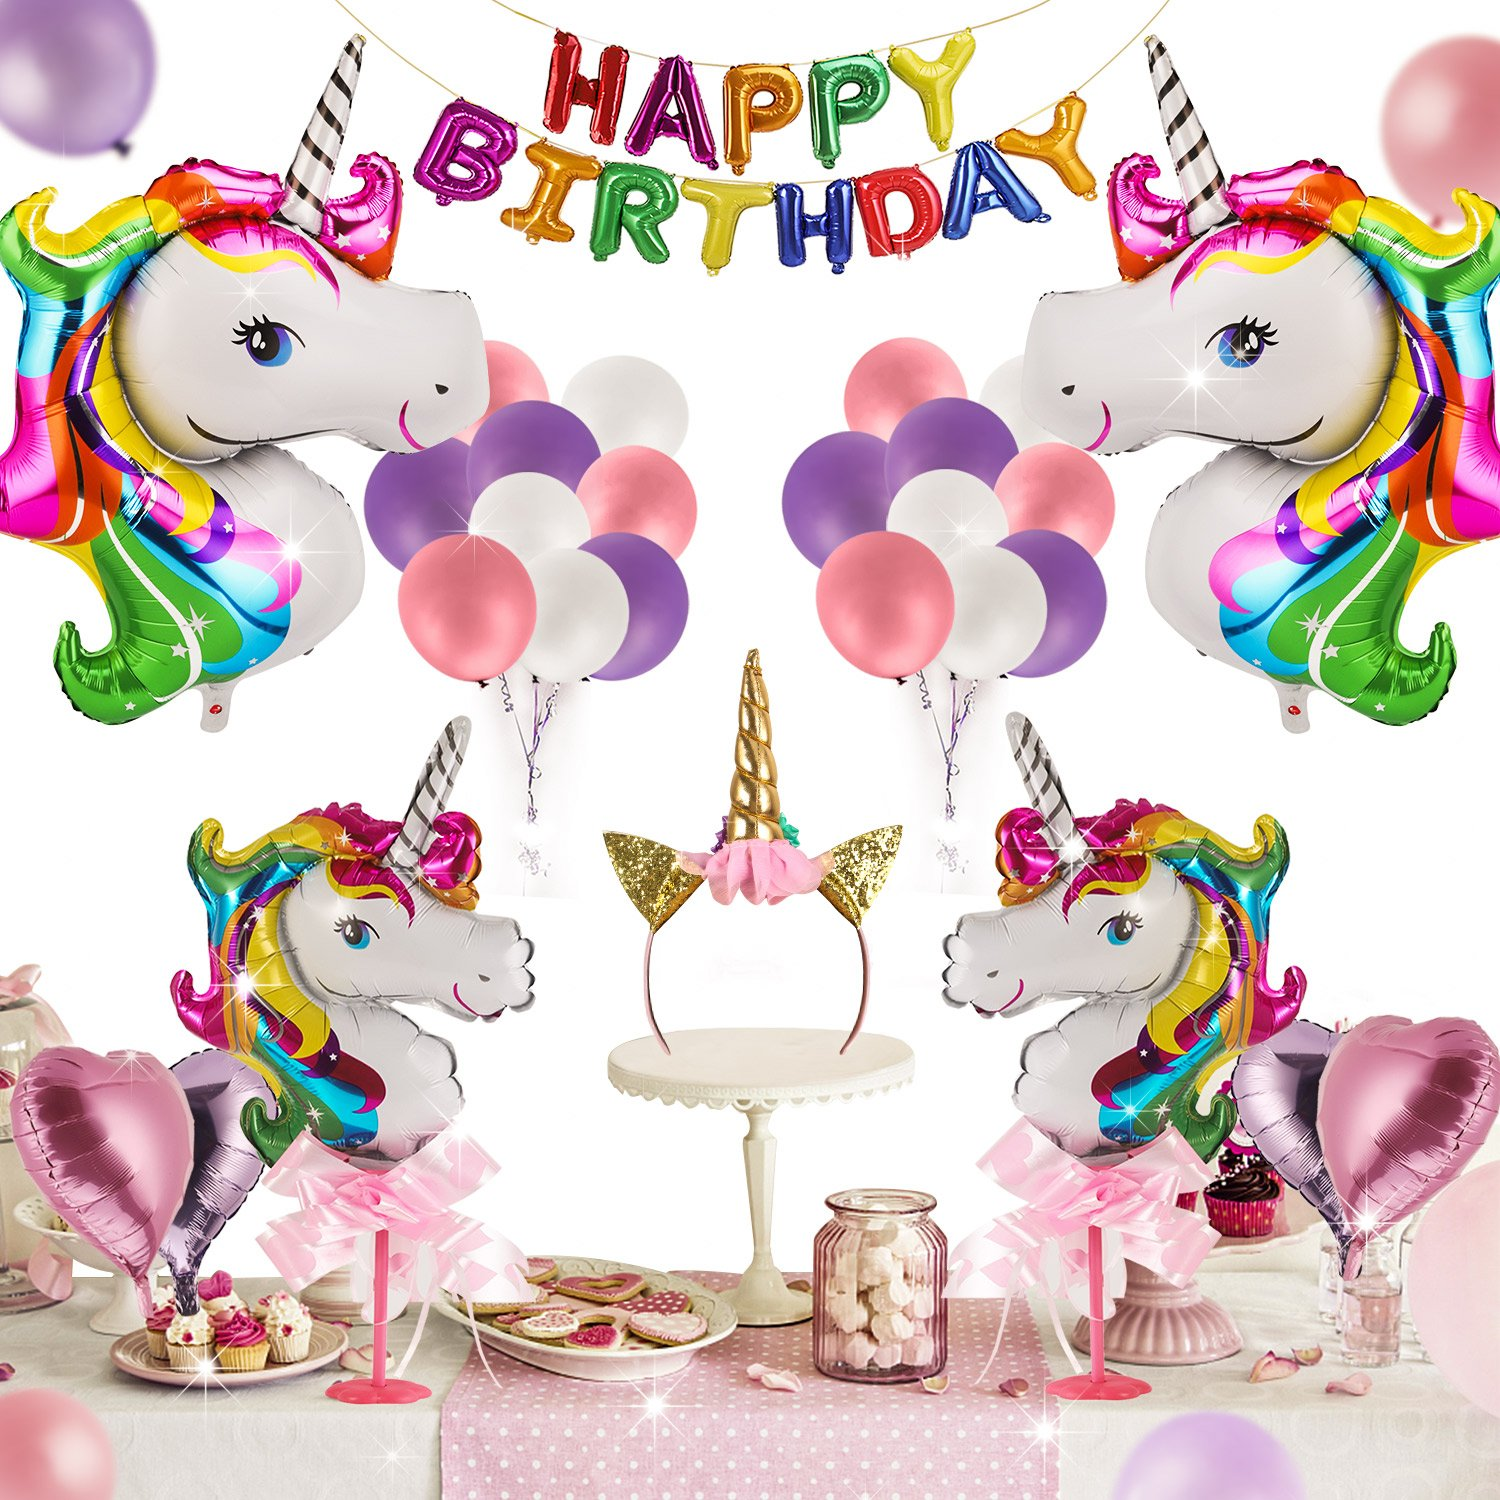 Unicorn Party Supplies - 42 Pcs for Birthday Decorations,Birthday party favors for kids,Rainbow birthday banner,Glitter Unicorn Headband,foil heart Birthday balloons with Air Pump by Gemwi